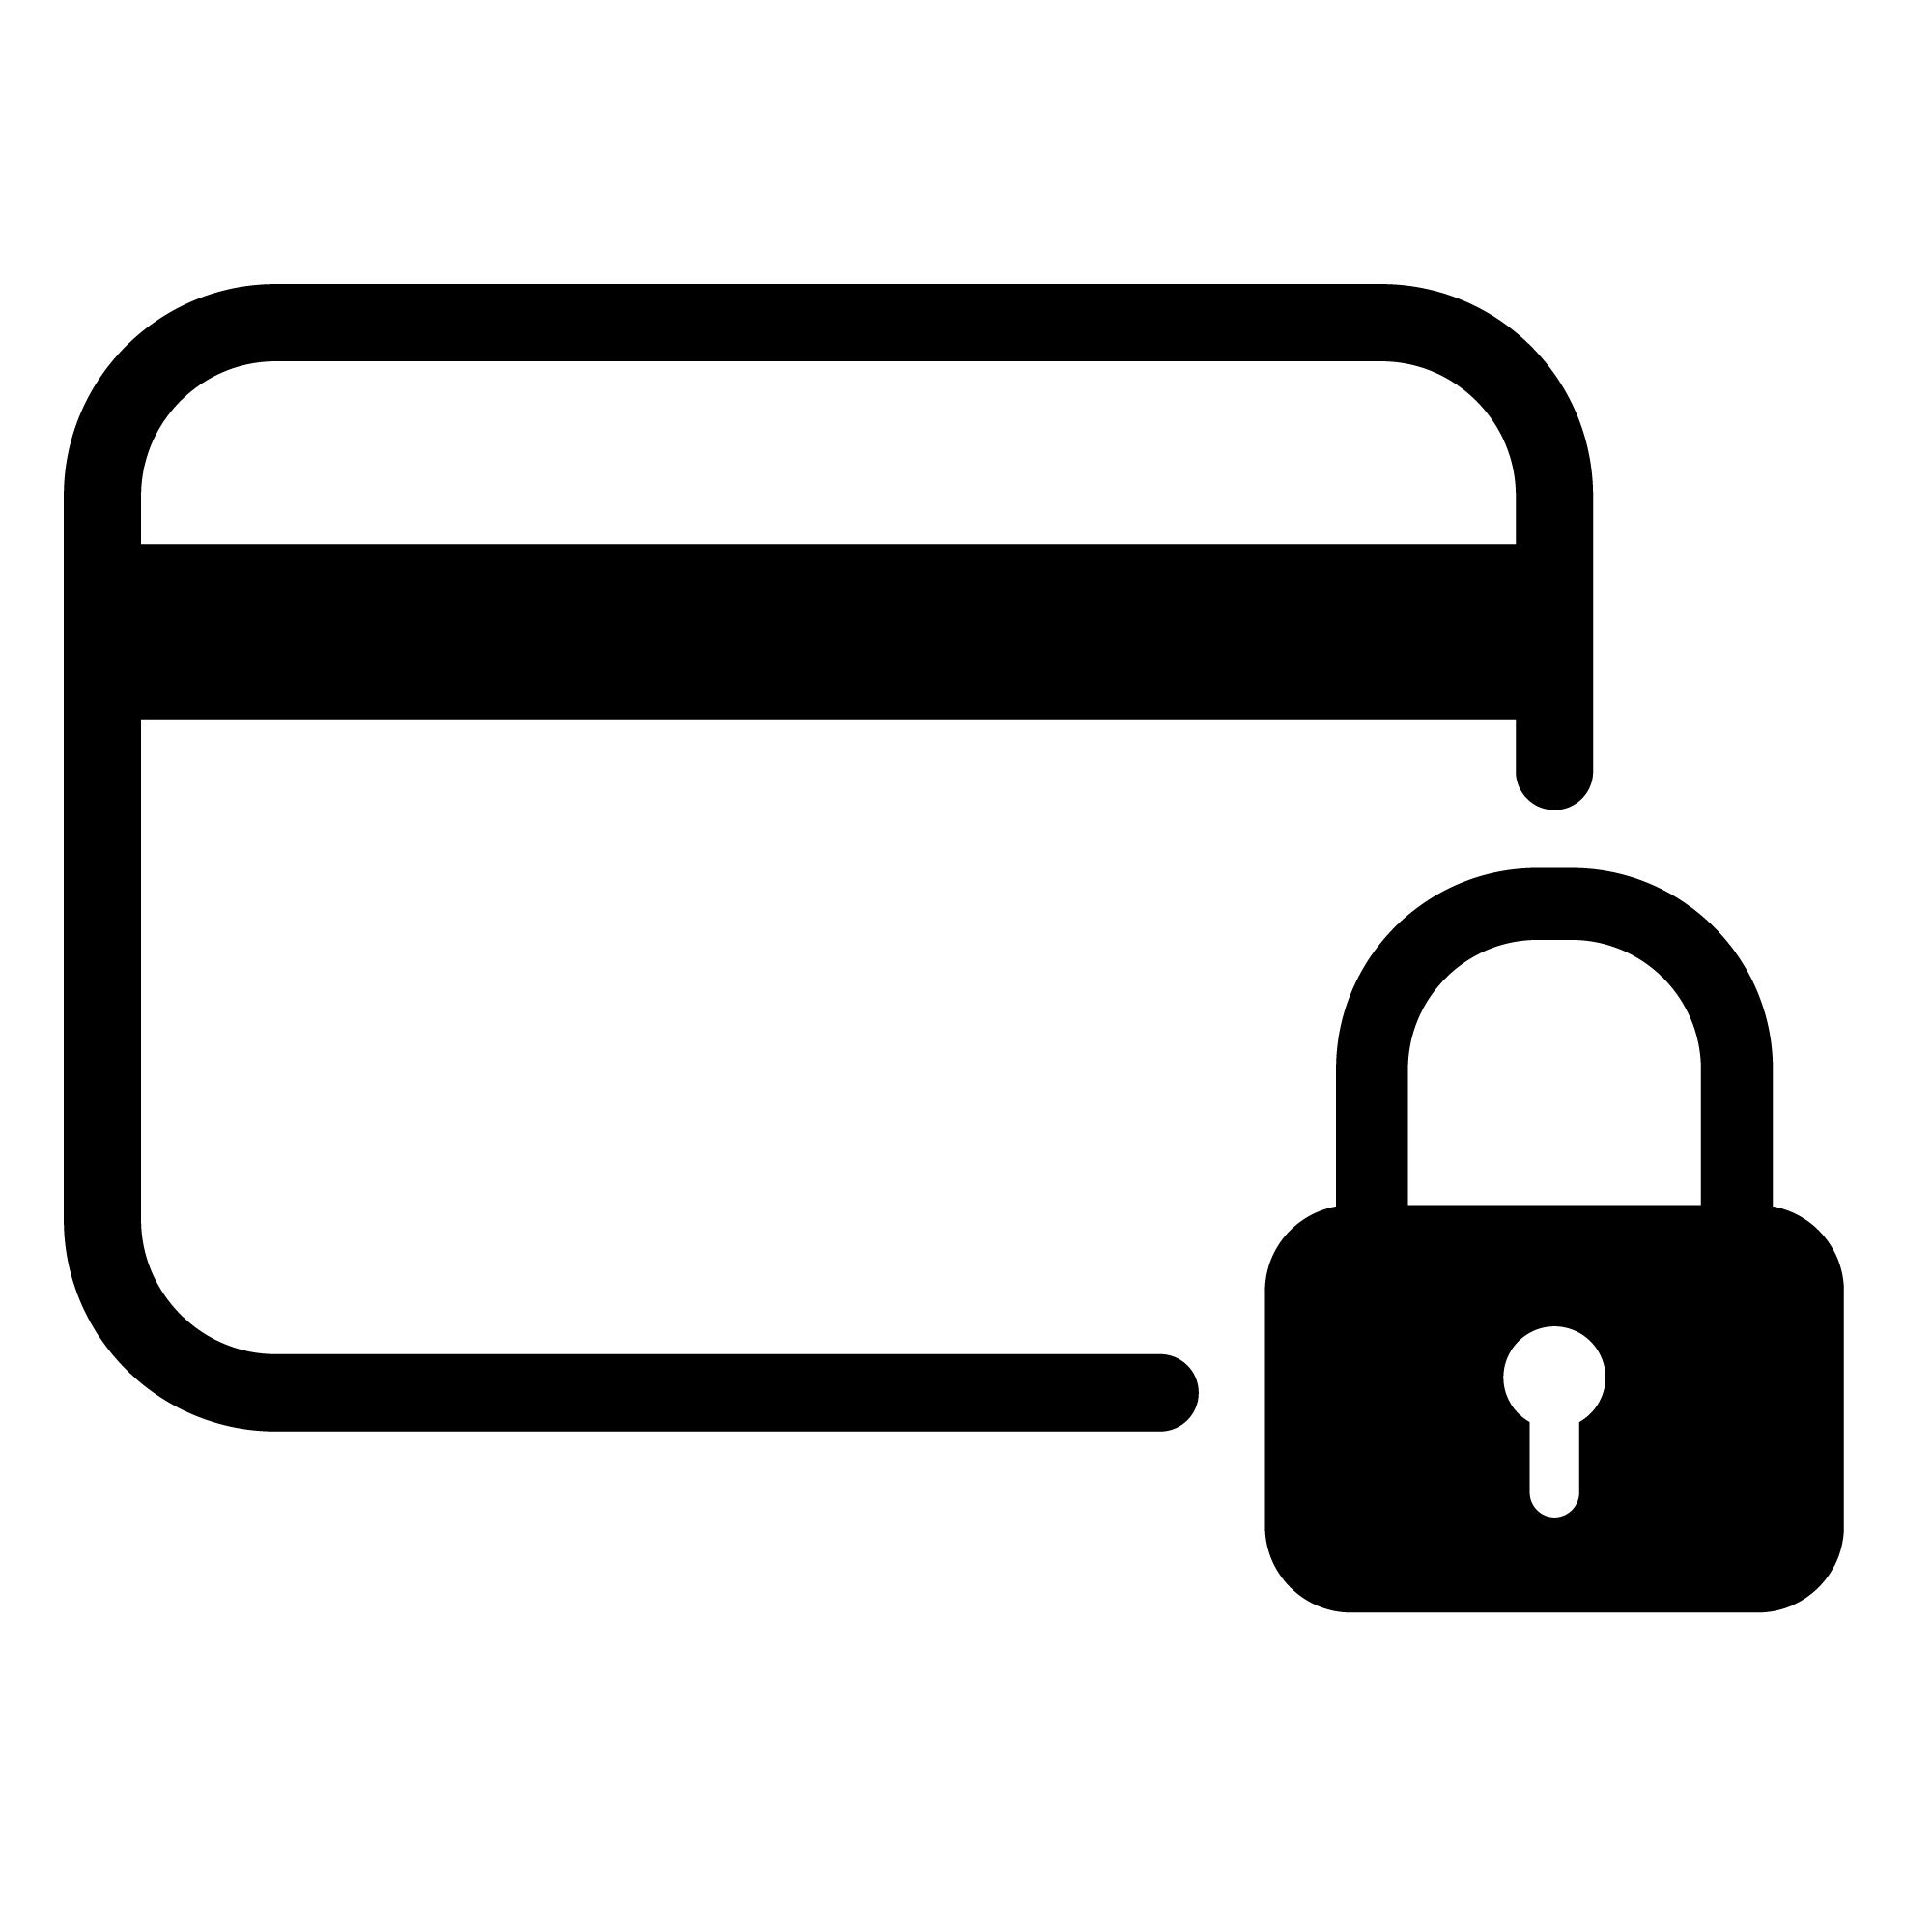 a Secure payment icon